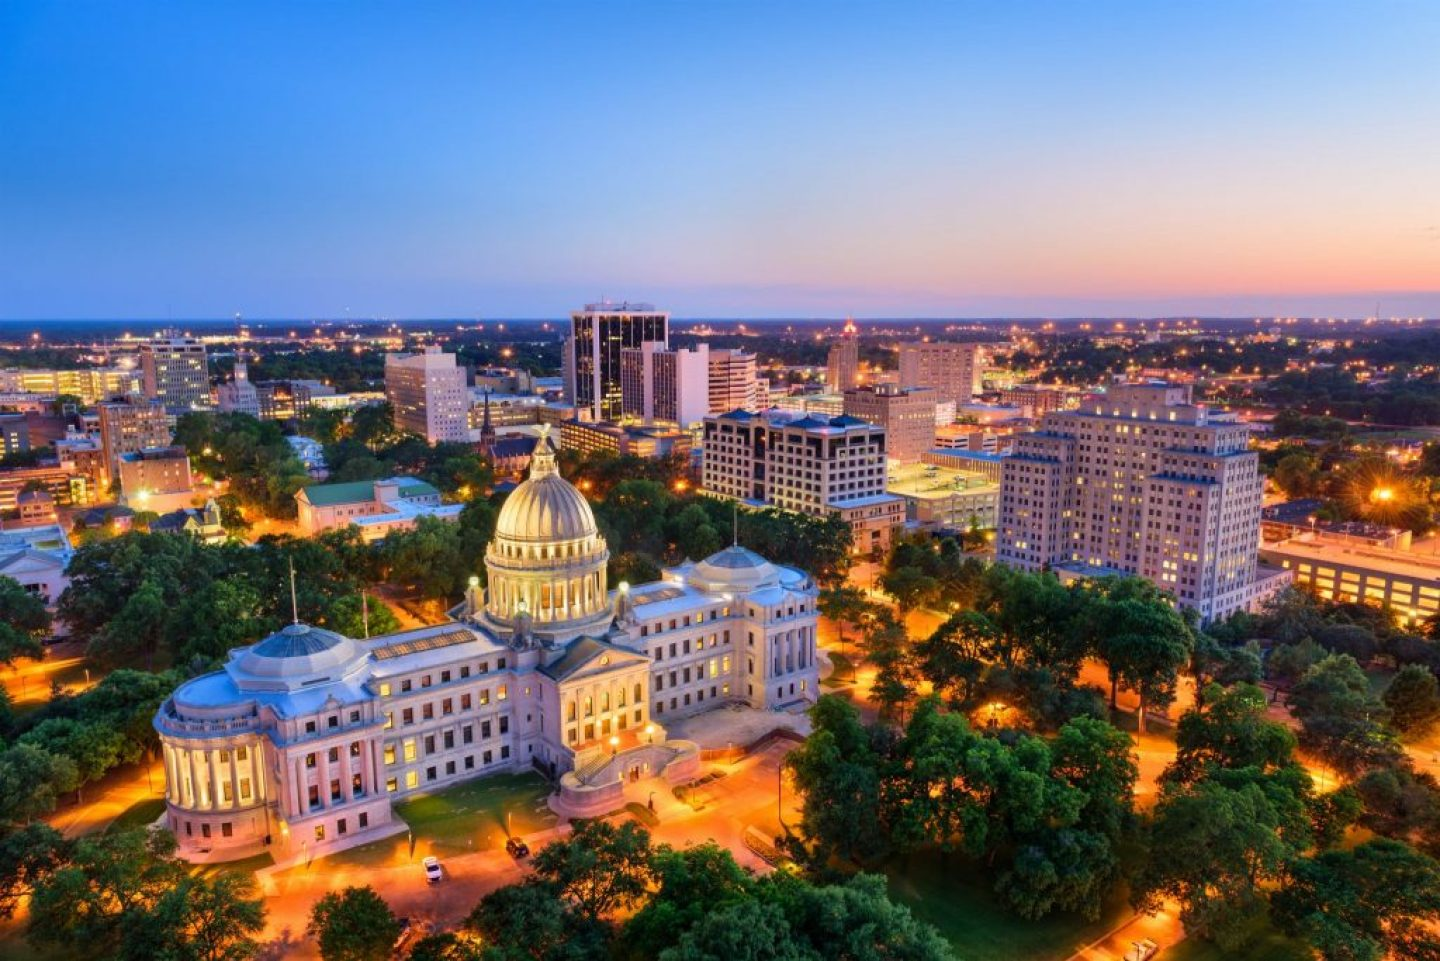 Things To Do In Jackson Mississippi: The Ultimate Guide